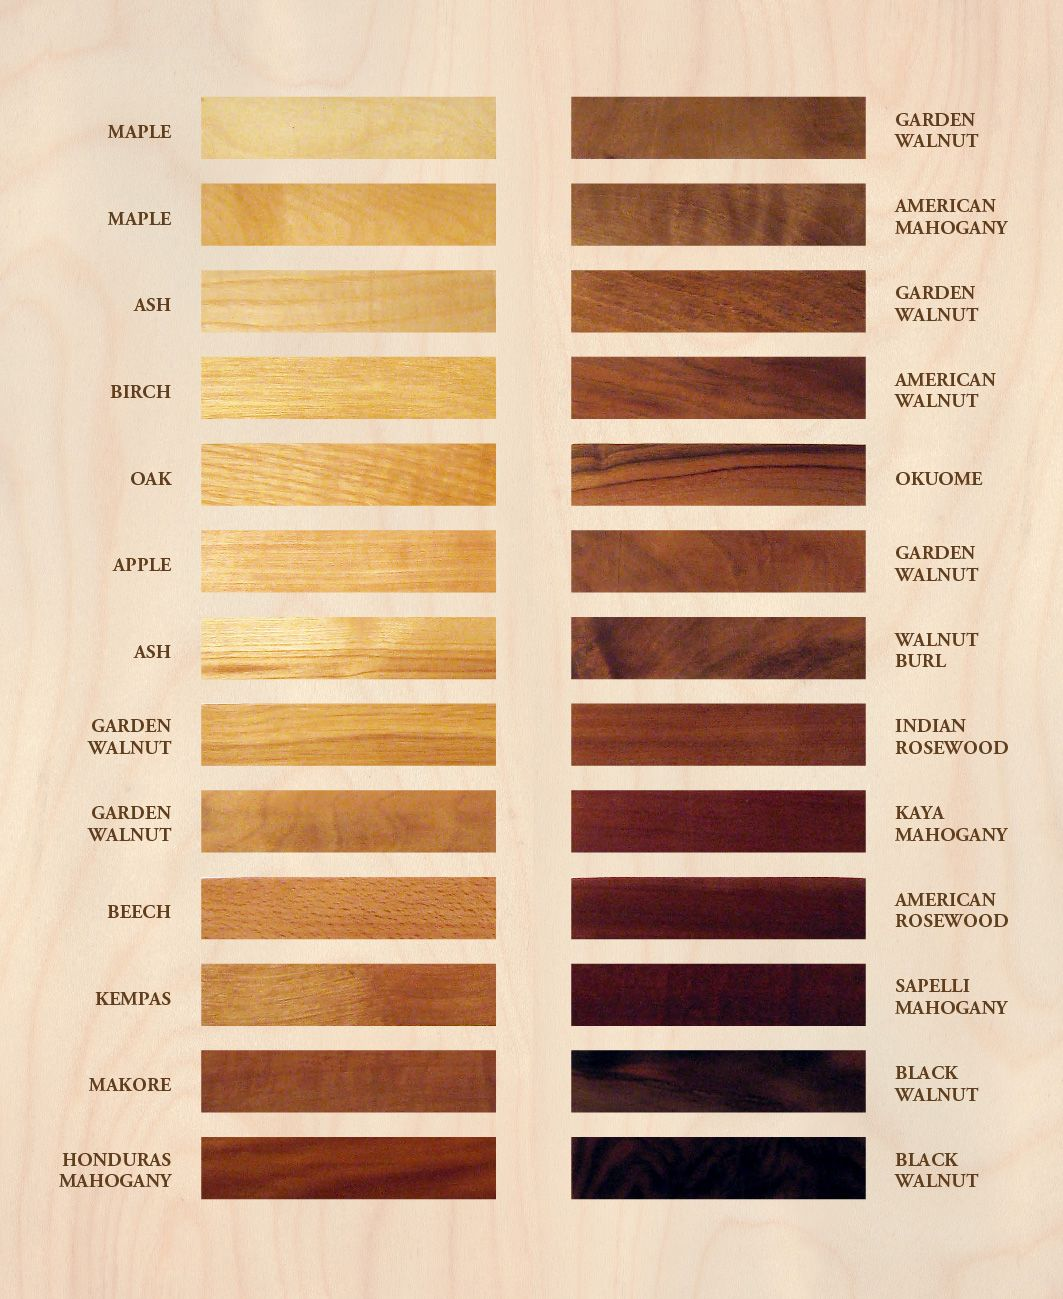 Wood Color Chart by Wood Arts – Intarsia Portraits | Stuff in 2019 | Intarsia wood, Woodworking ...